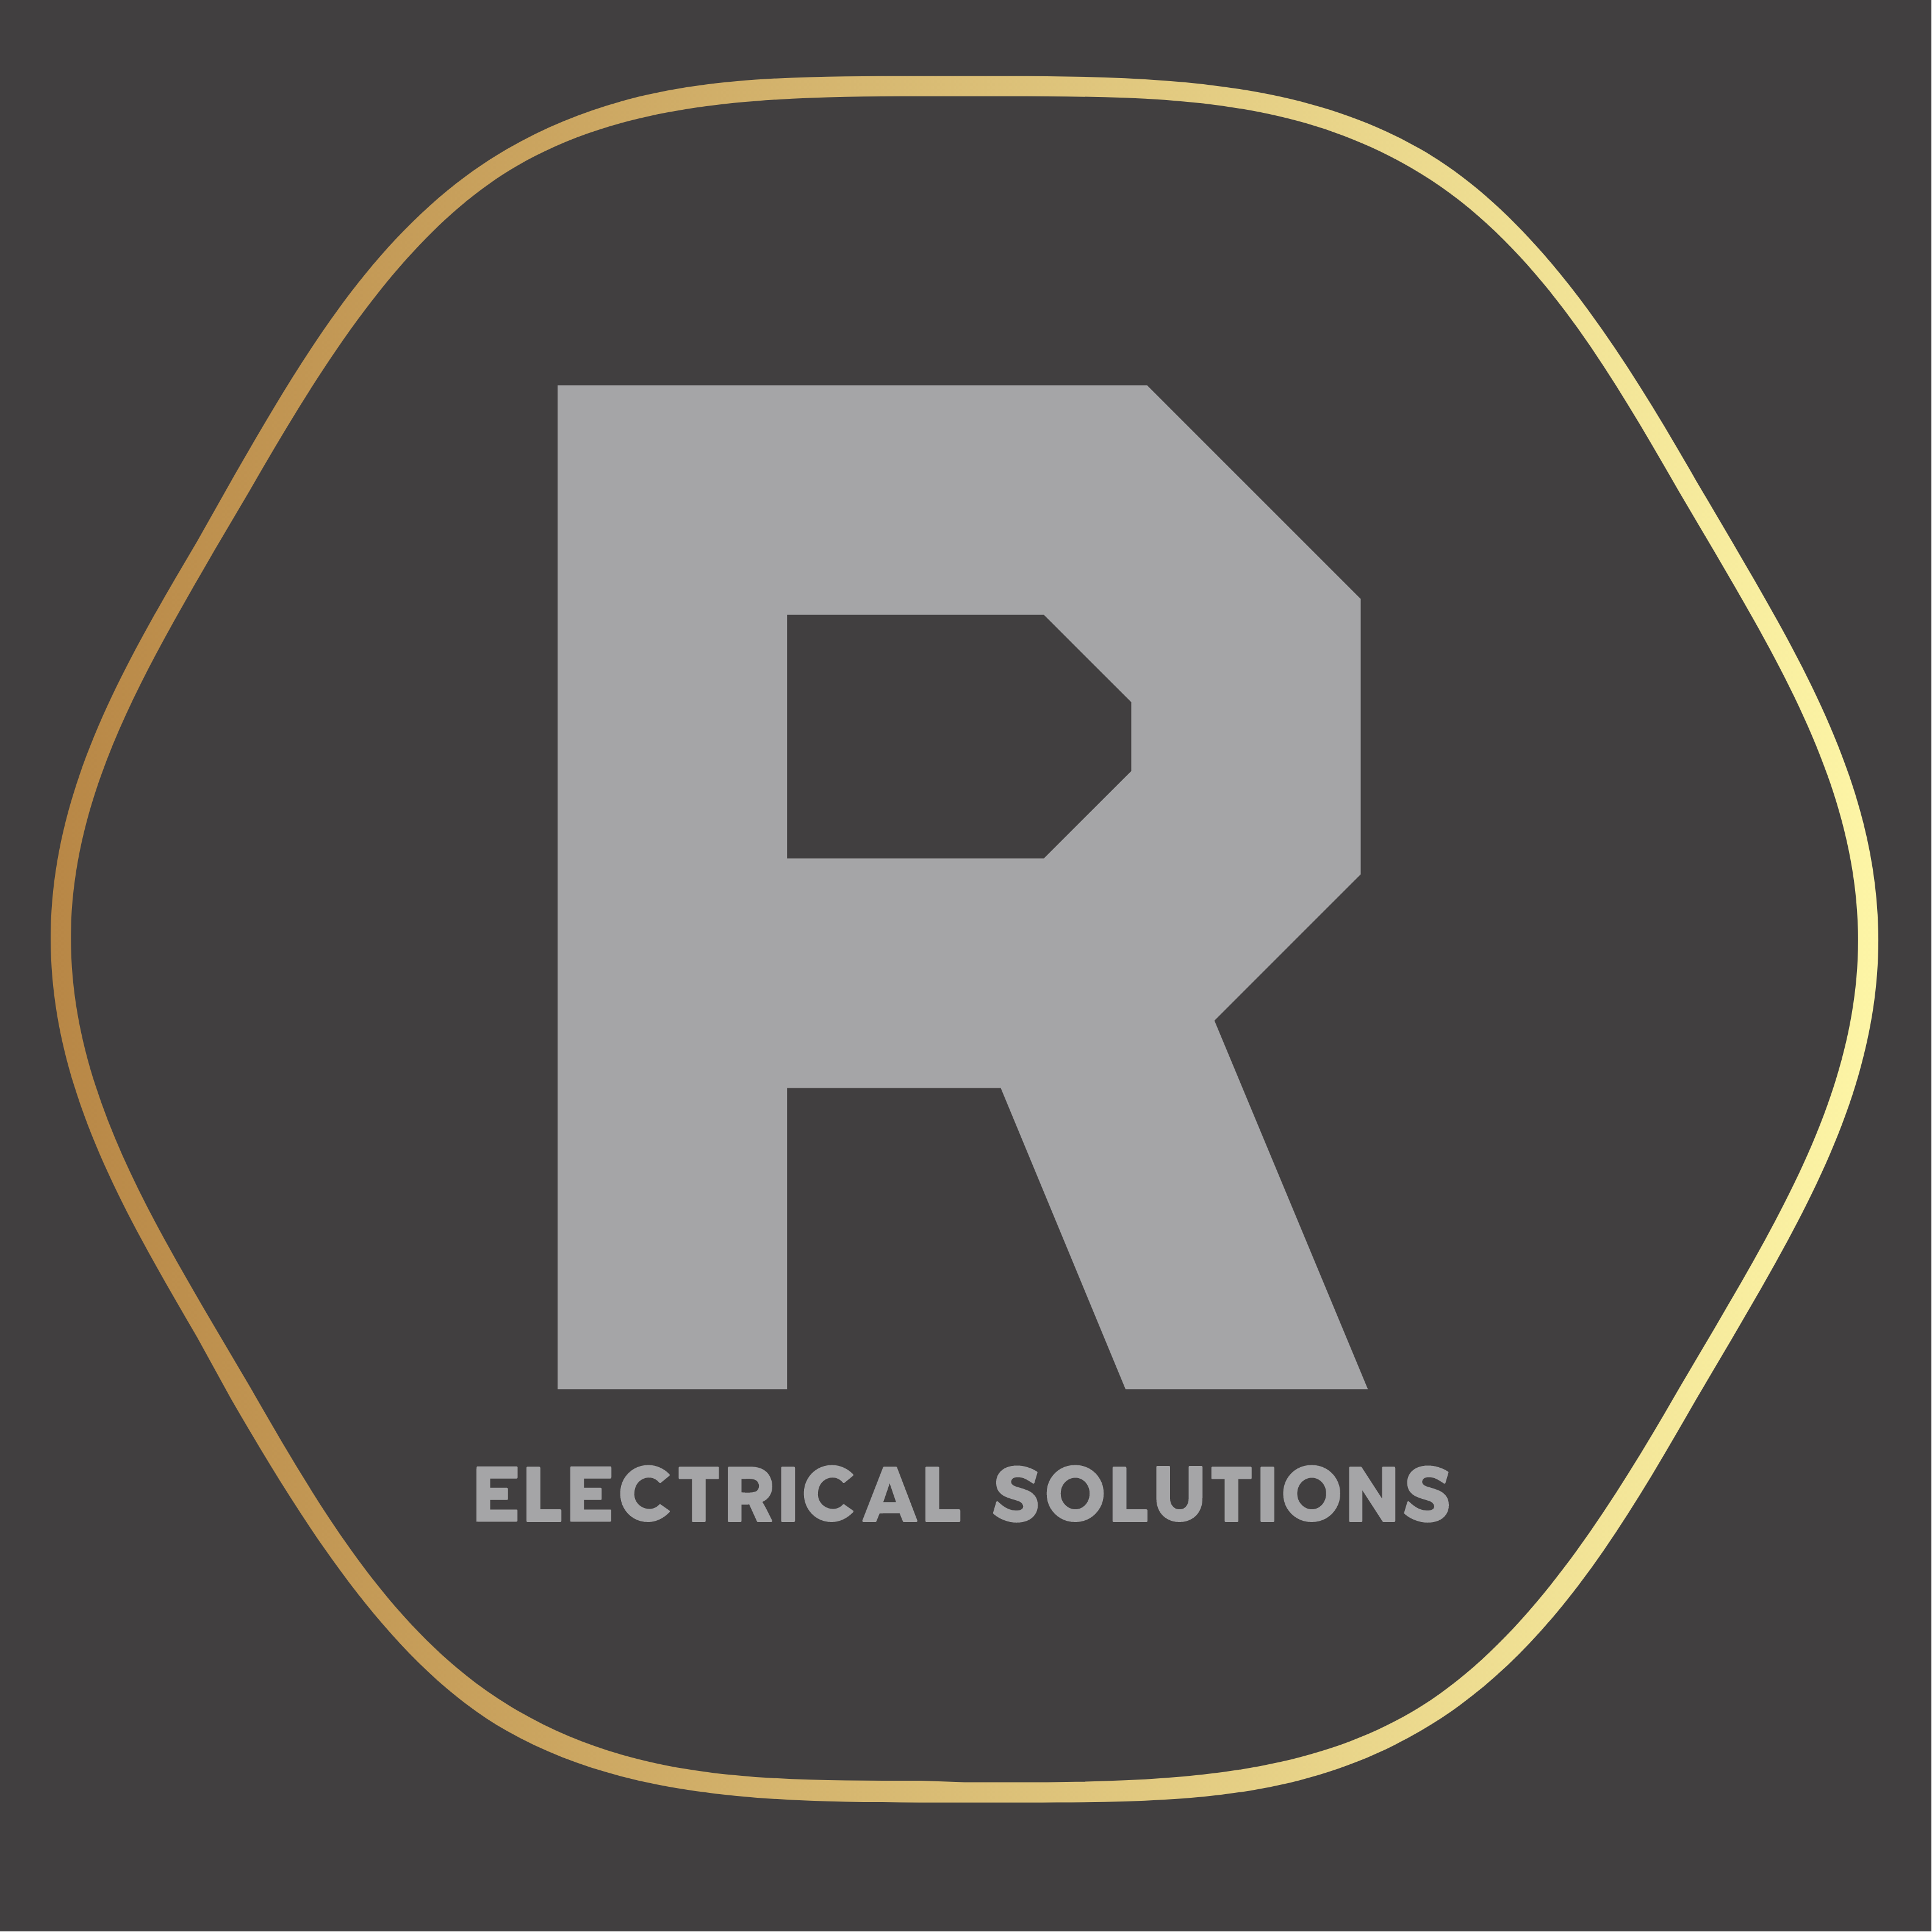 R Electrical Solutions